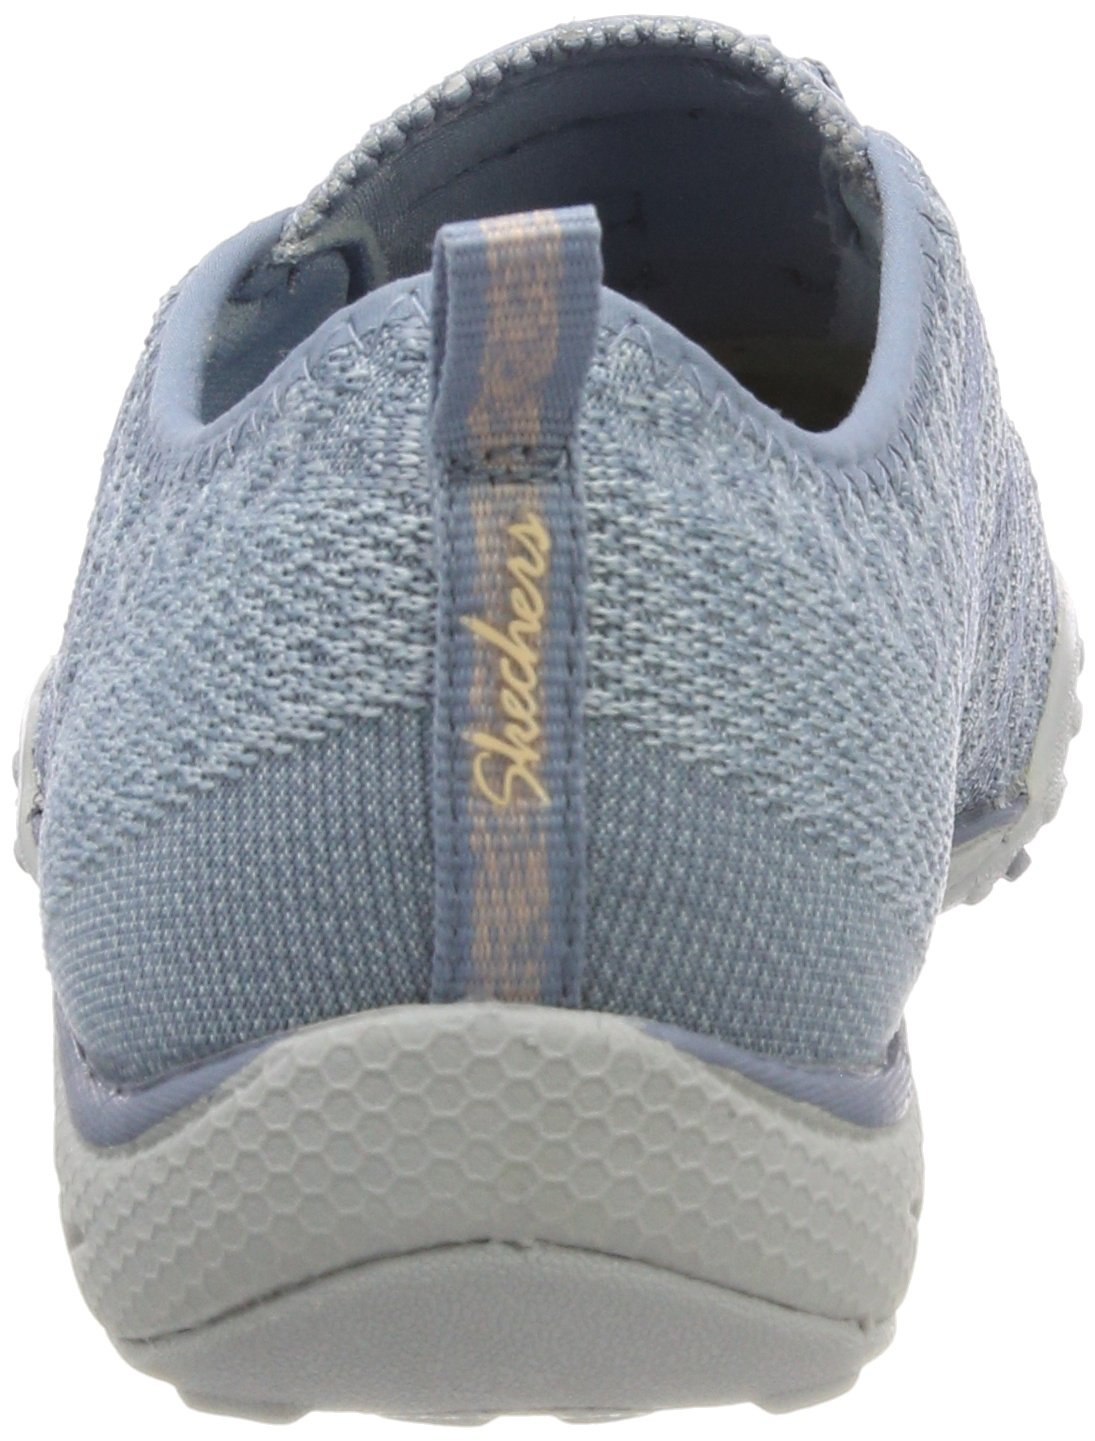 Skechers Relaxed Fit Breathe Easy Fortune Knit Womens Bungee Sneakers Blue 8 by Skechers (Image #2)